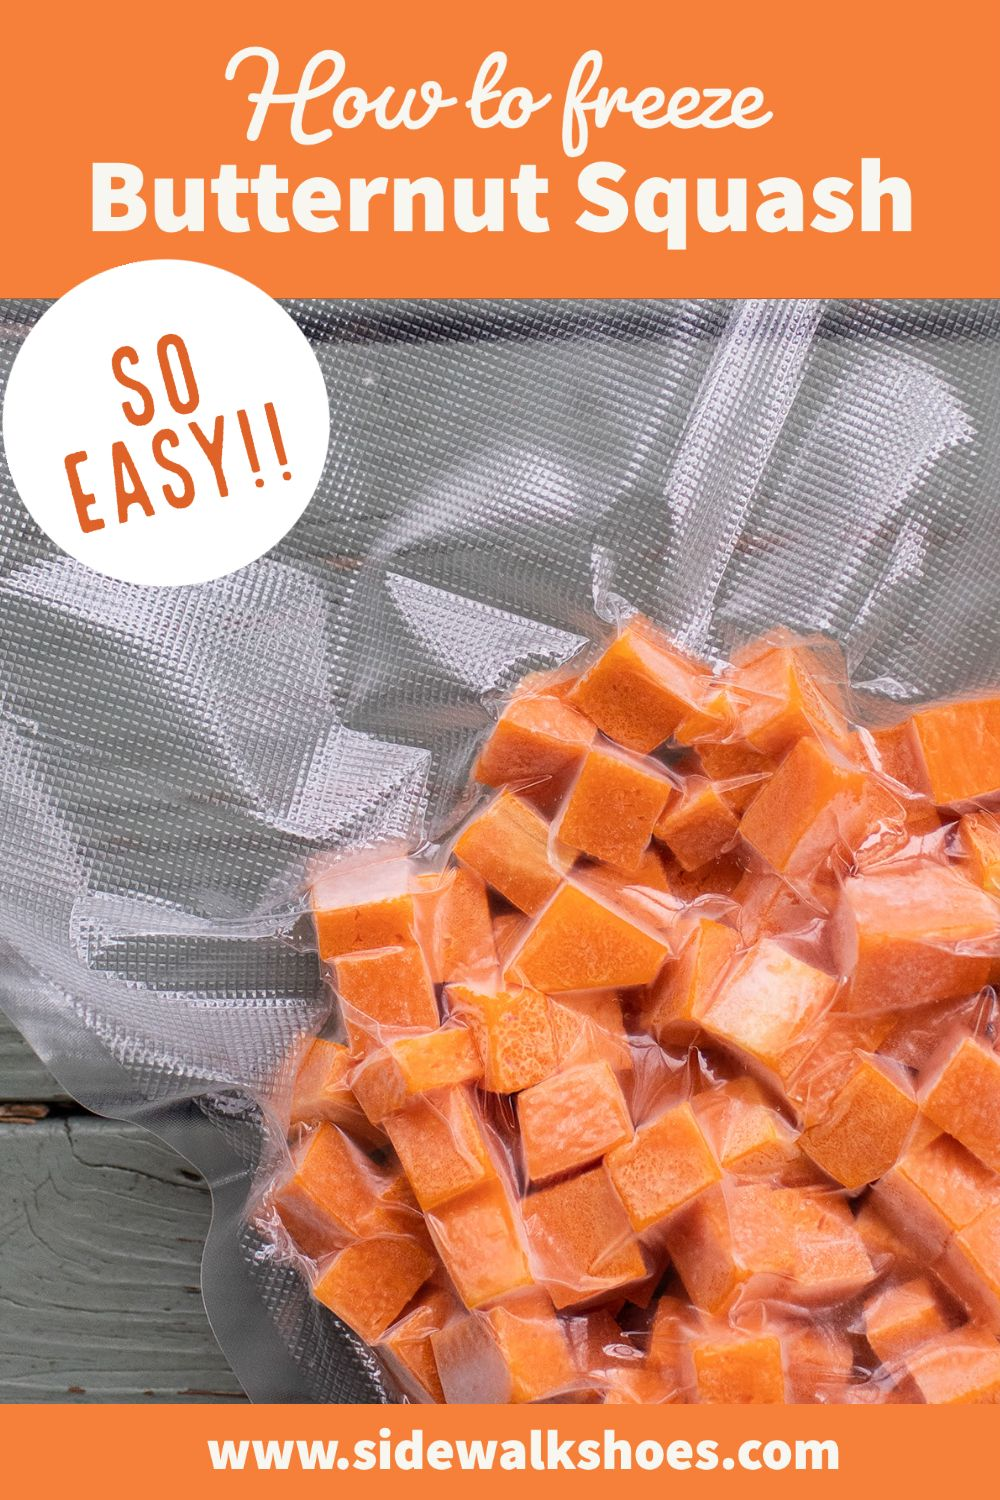 How To Freeze Butternut Squash Recipe In 2021 Frozen Butternut Squash Butternut Butternut Squash